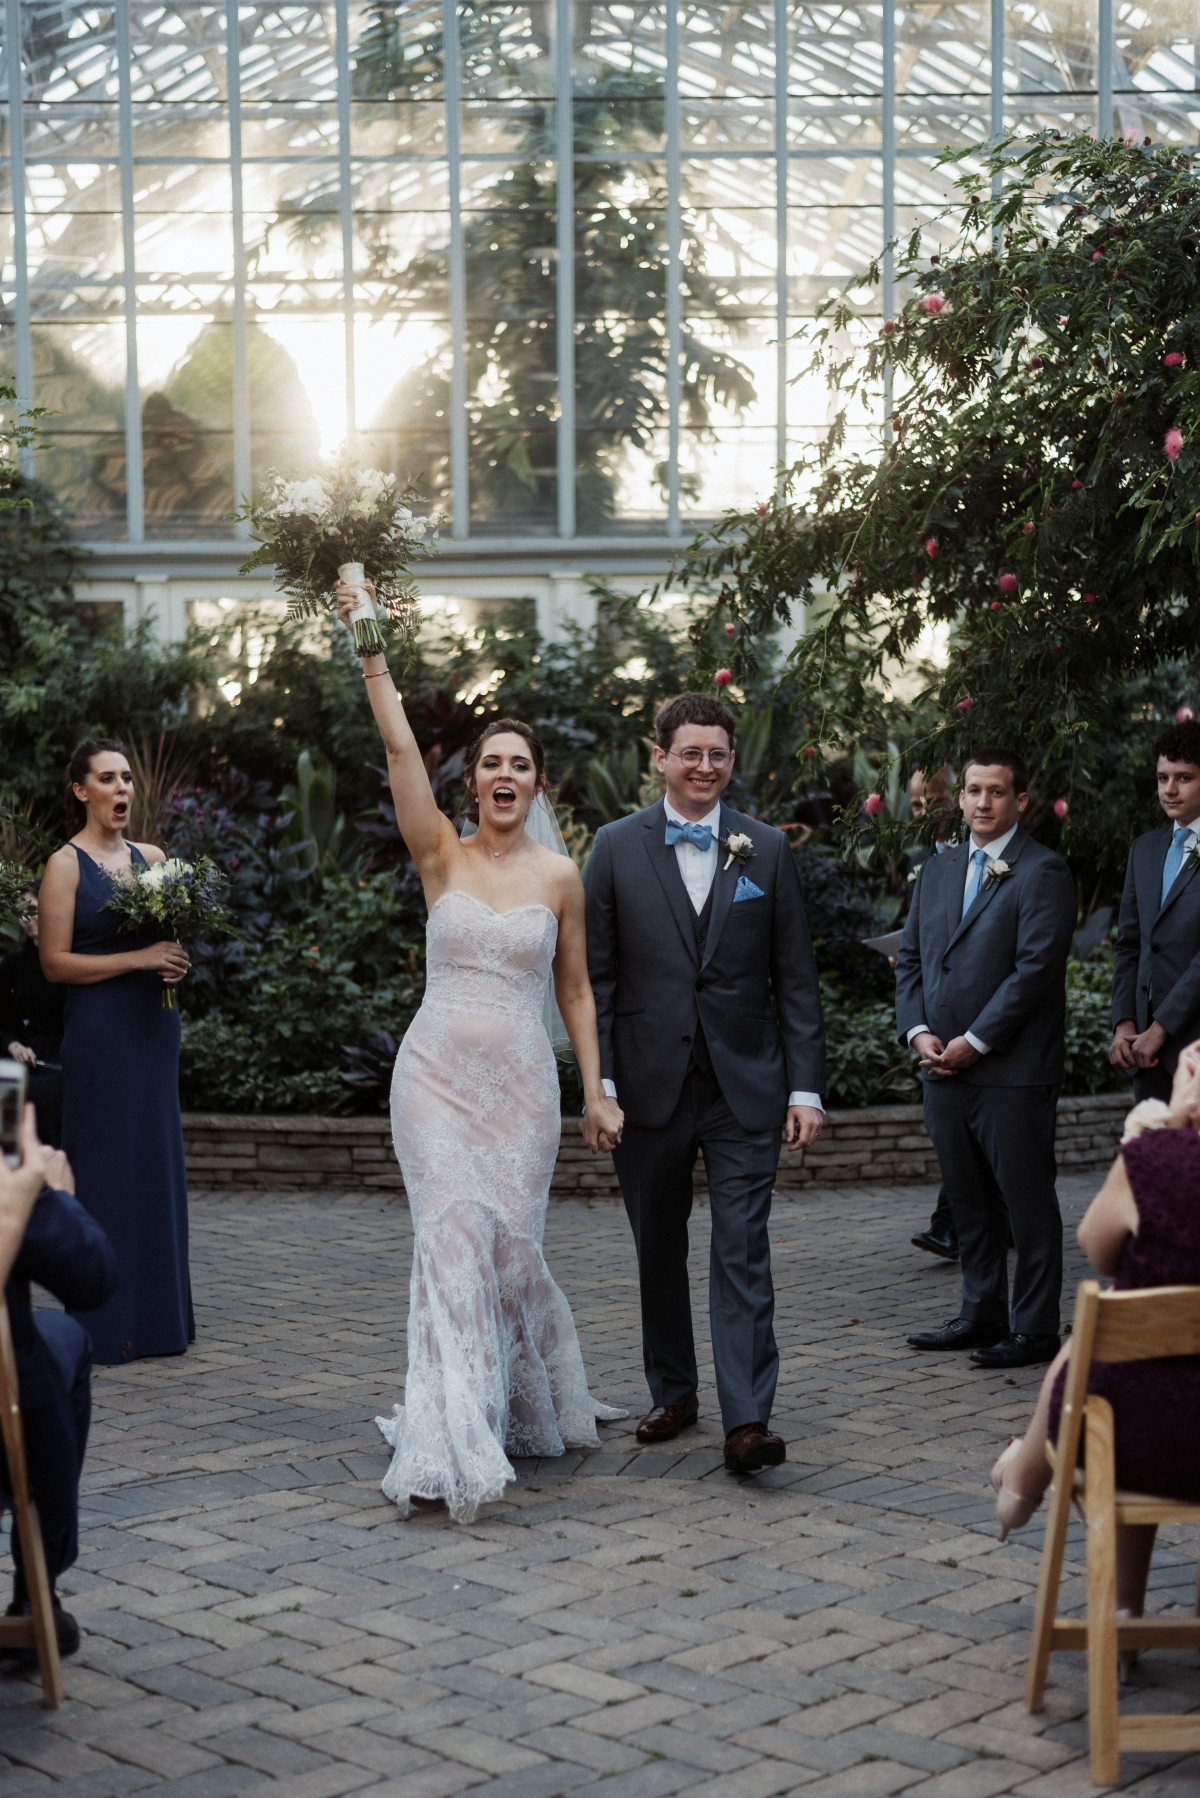 Garfield Park Conservatory Wedding 40